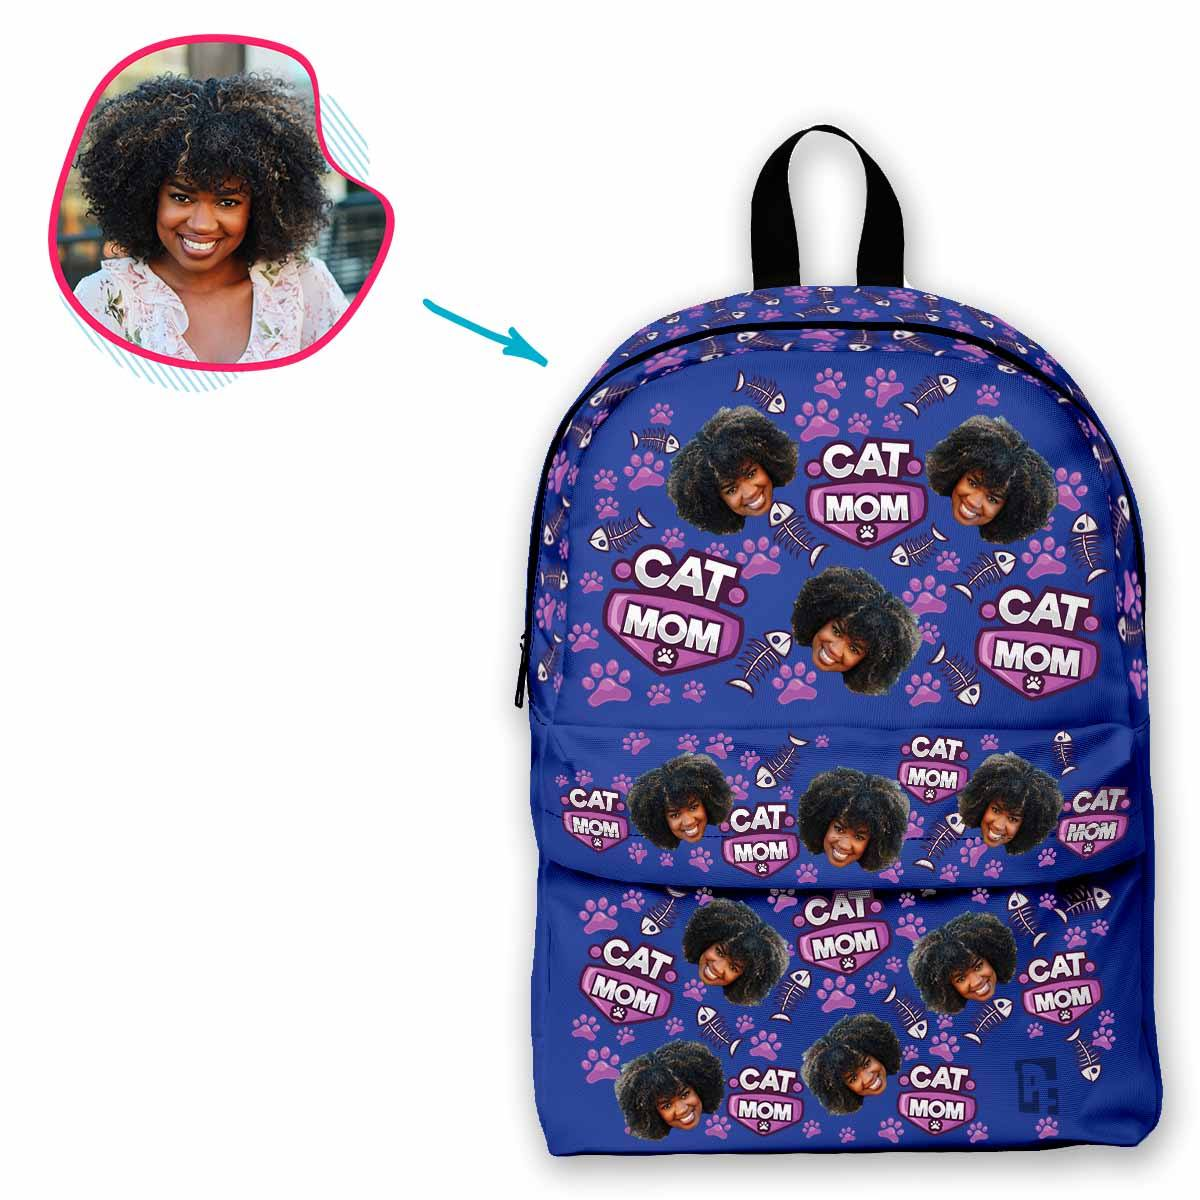 darkblue Cat Mom classic backpack personalized with photo of face printed on it